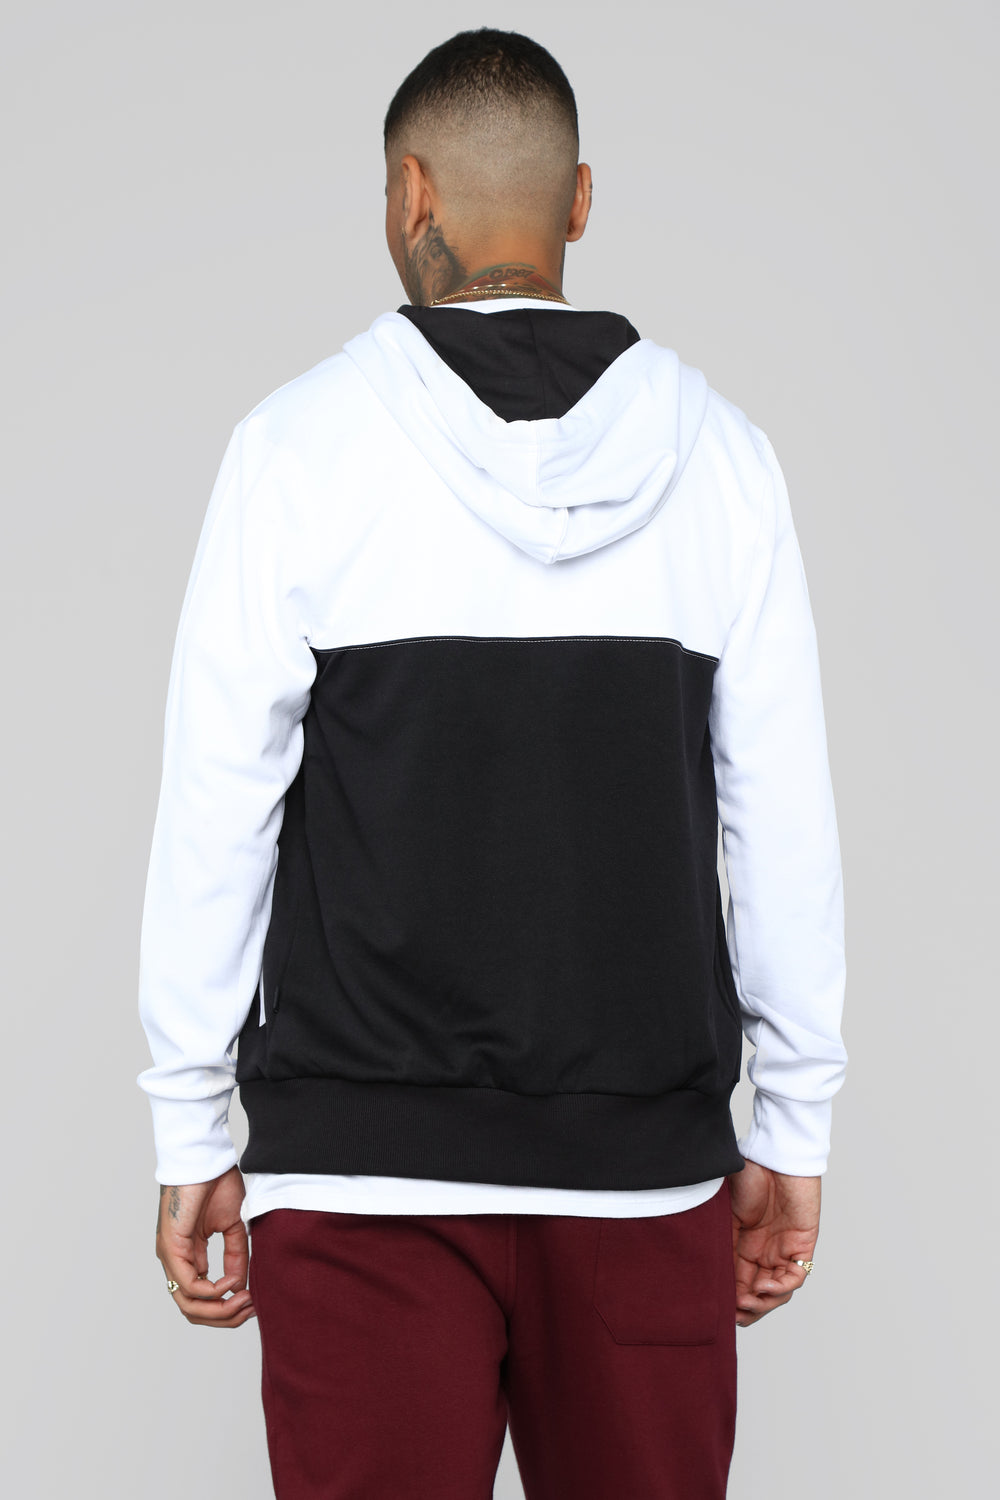 """Track Meet"" Jacket - Black/White"